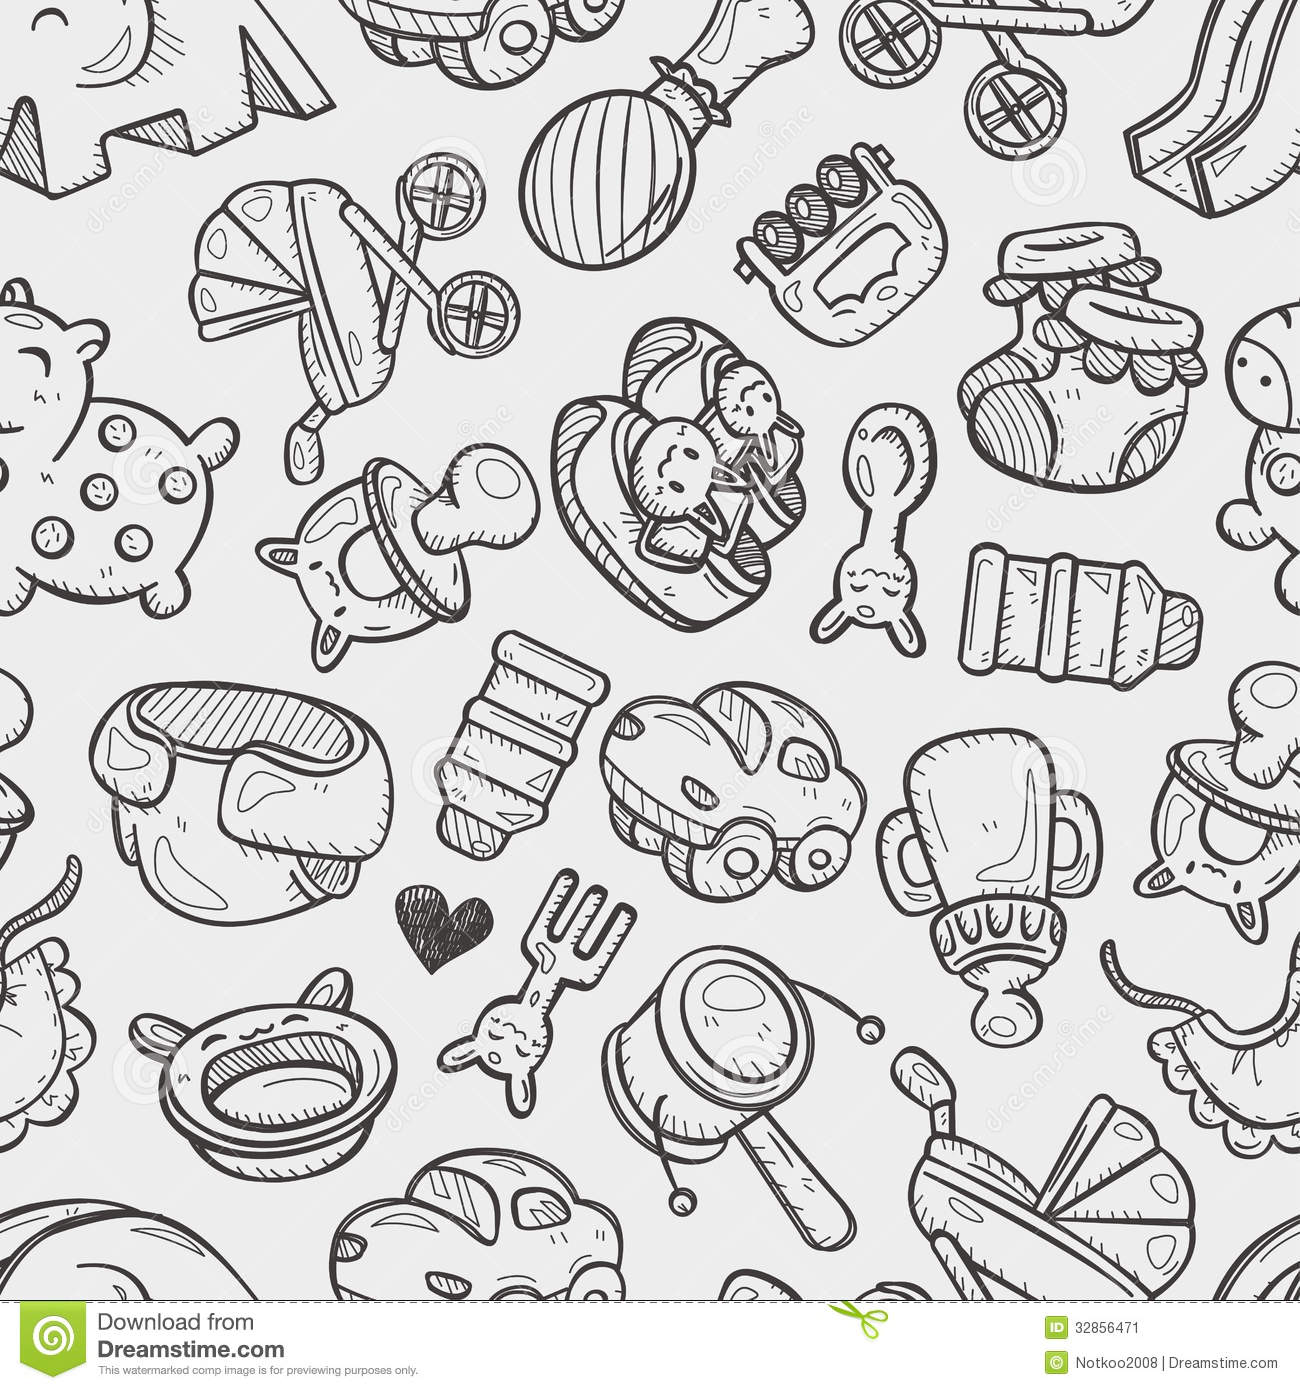 Drawings Of Toys For Boys : Seamless doodle baby toy pattern stock vector